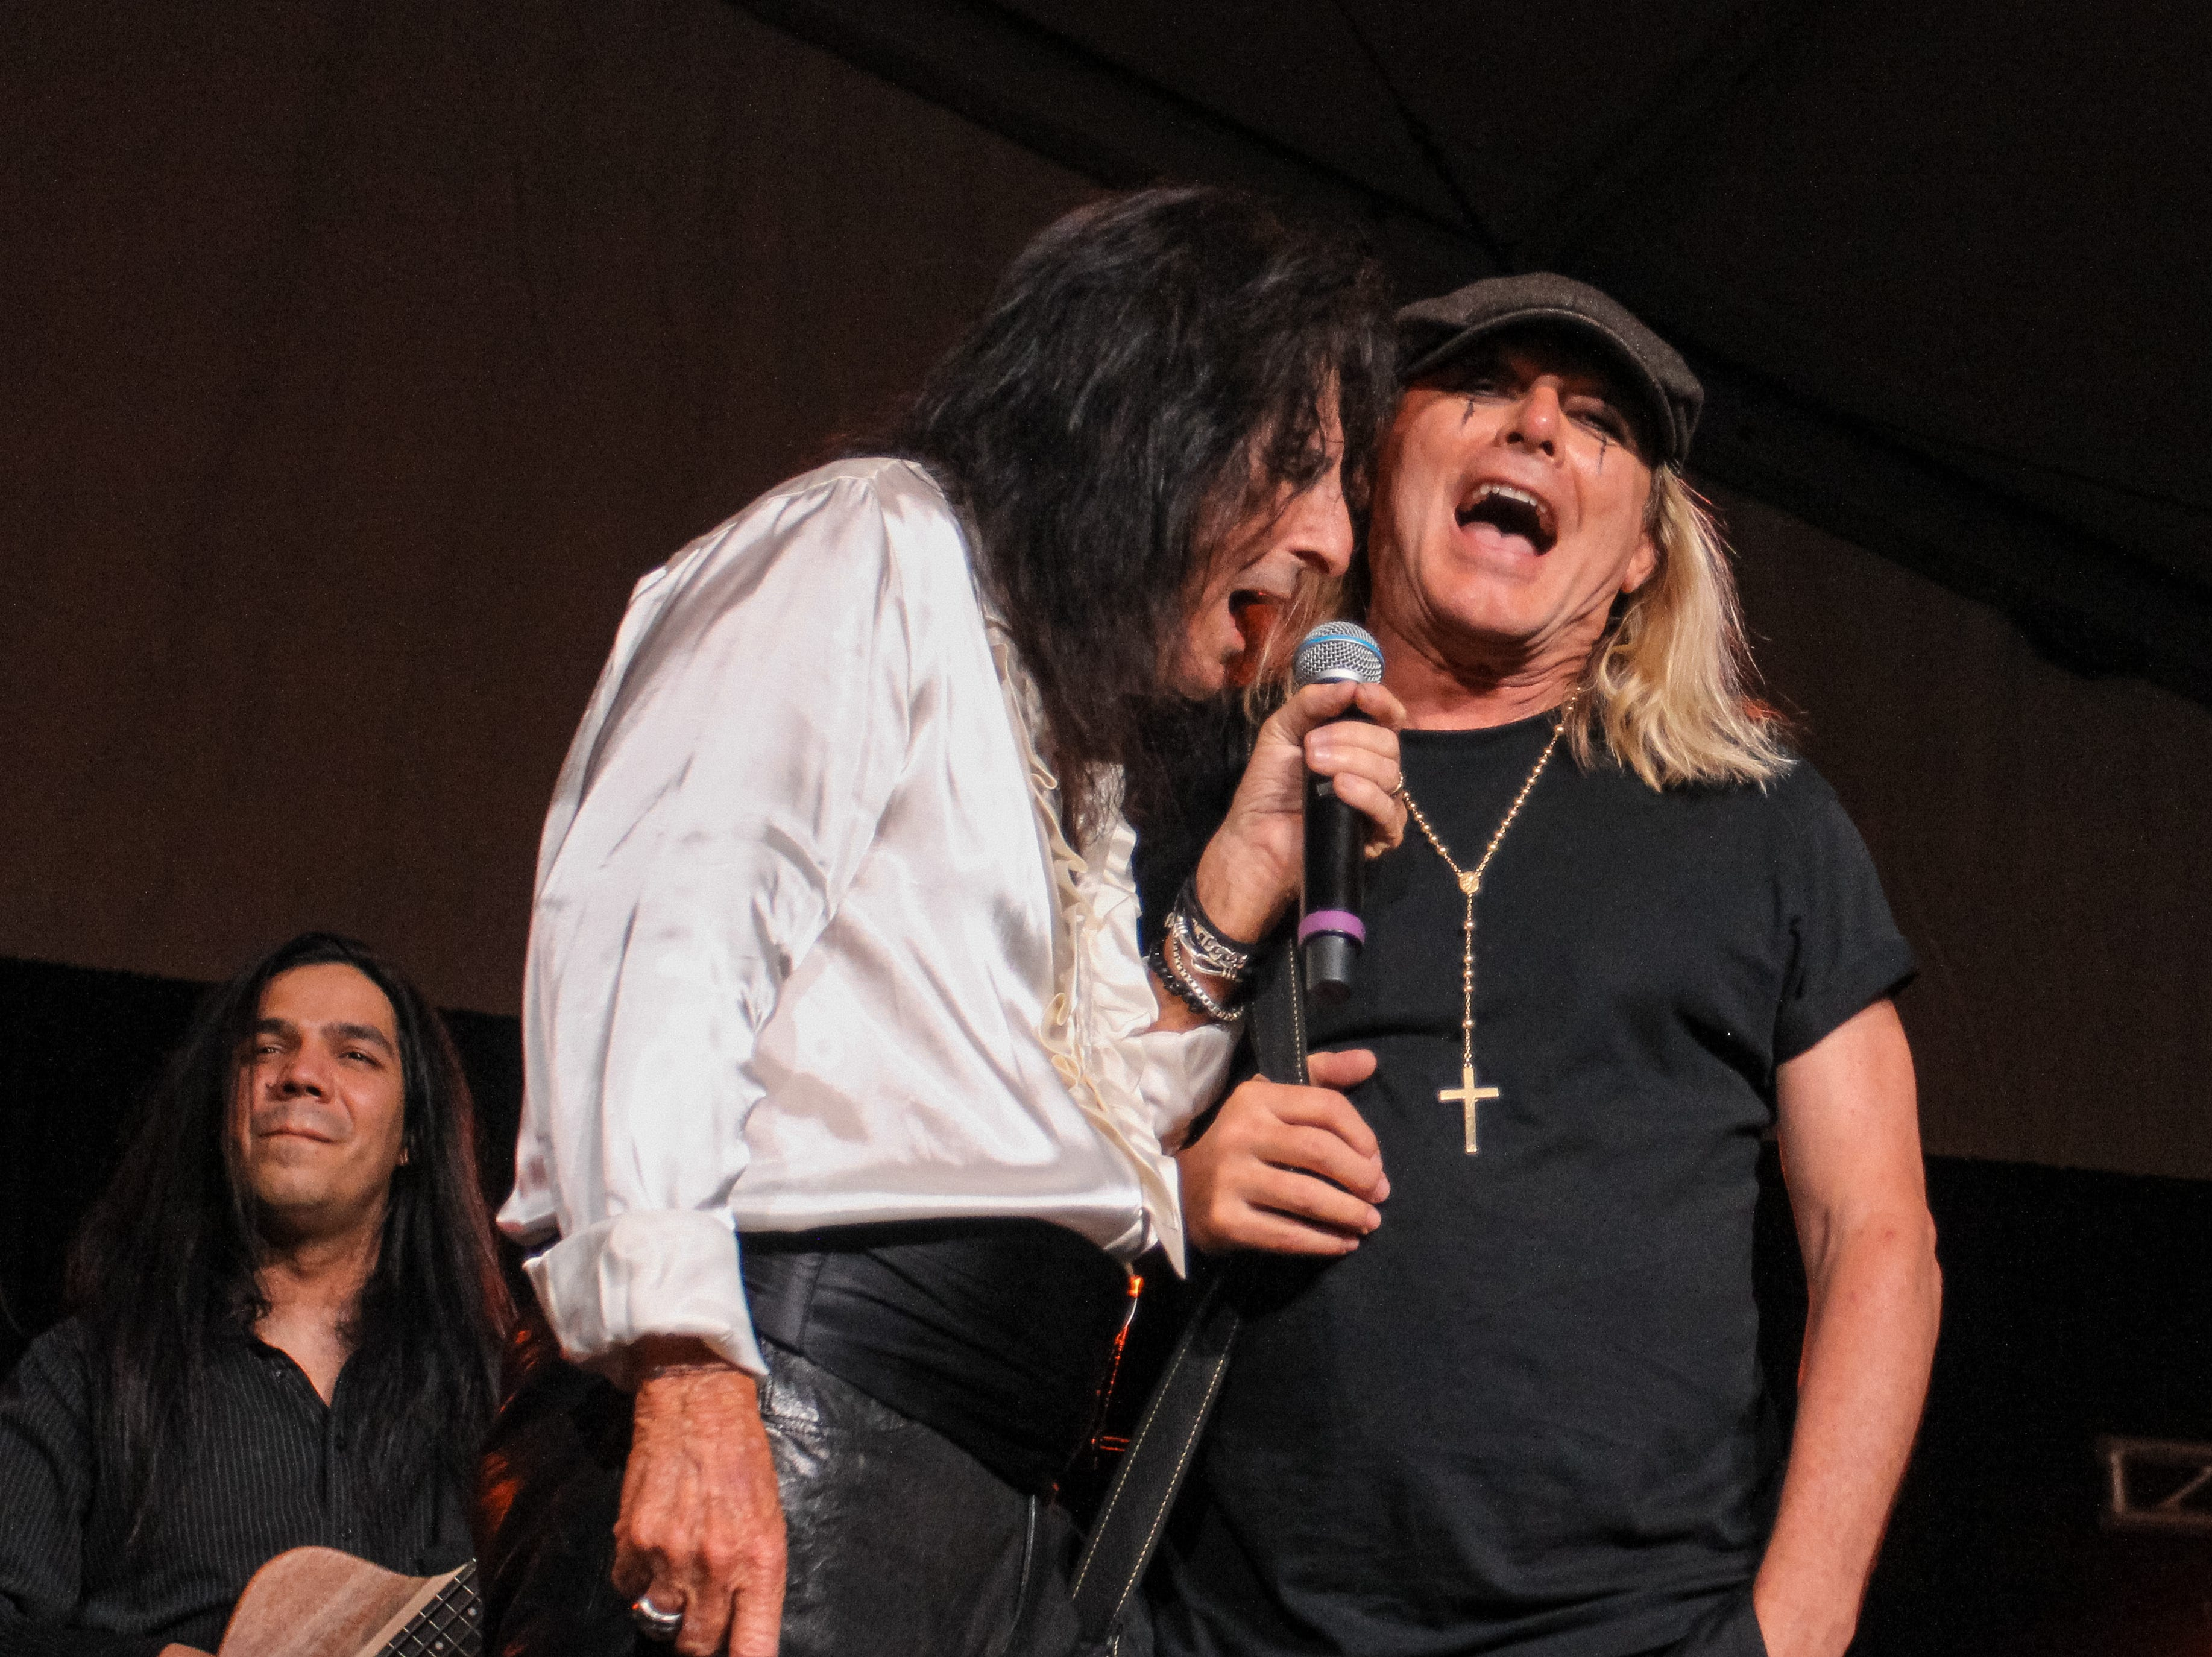 Alice Cooper and Robin Zander of Cheap Trick perform at Alice Cooper's Rock & Roll Fundraising Bash at the Las Sendas Golf Club in Mesa on April 27, 2019.